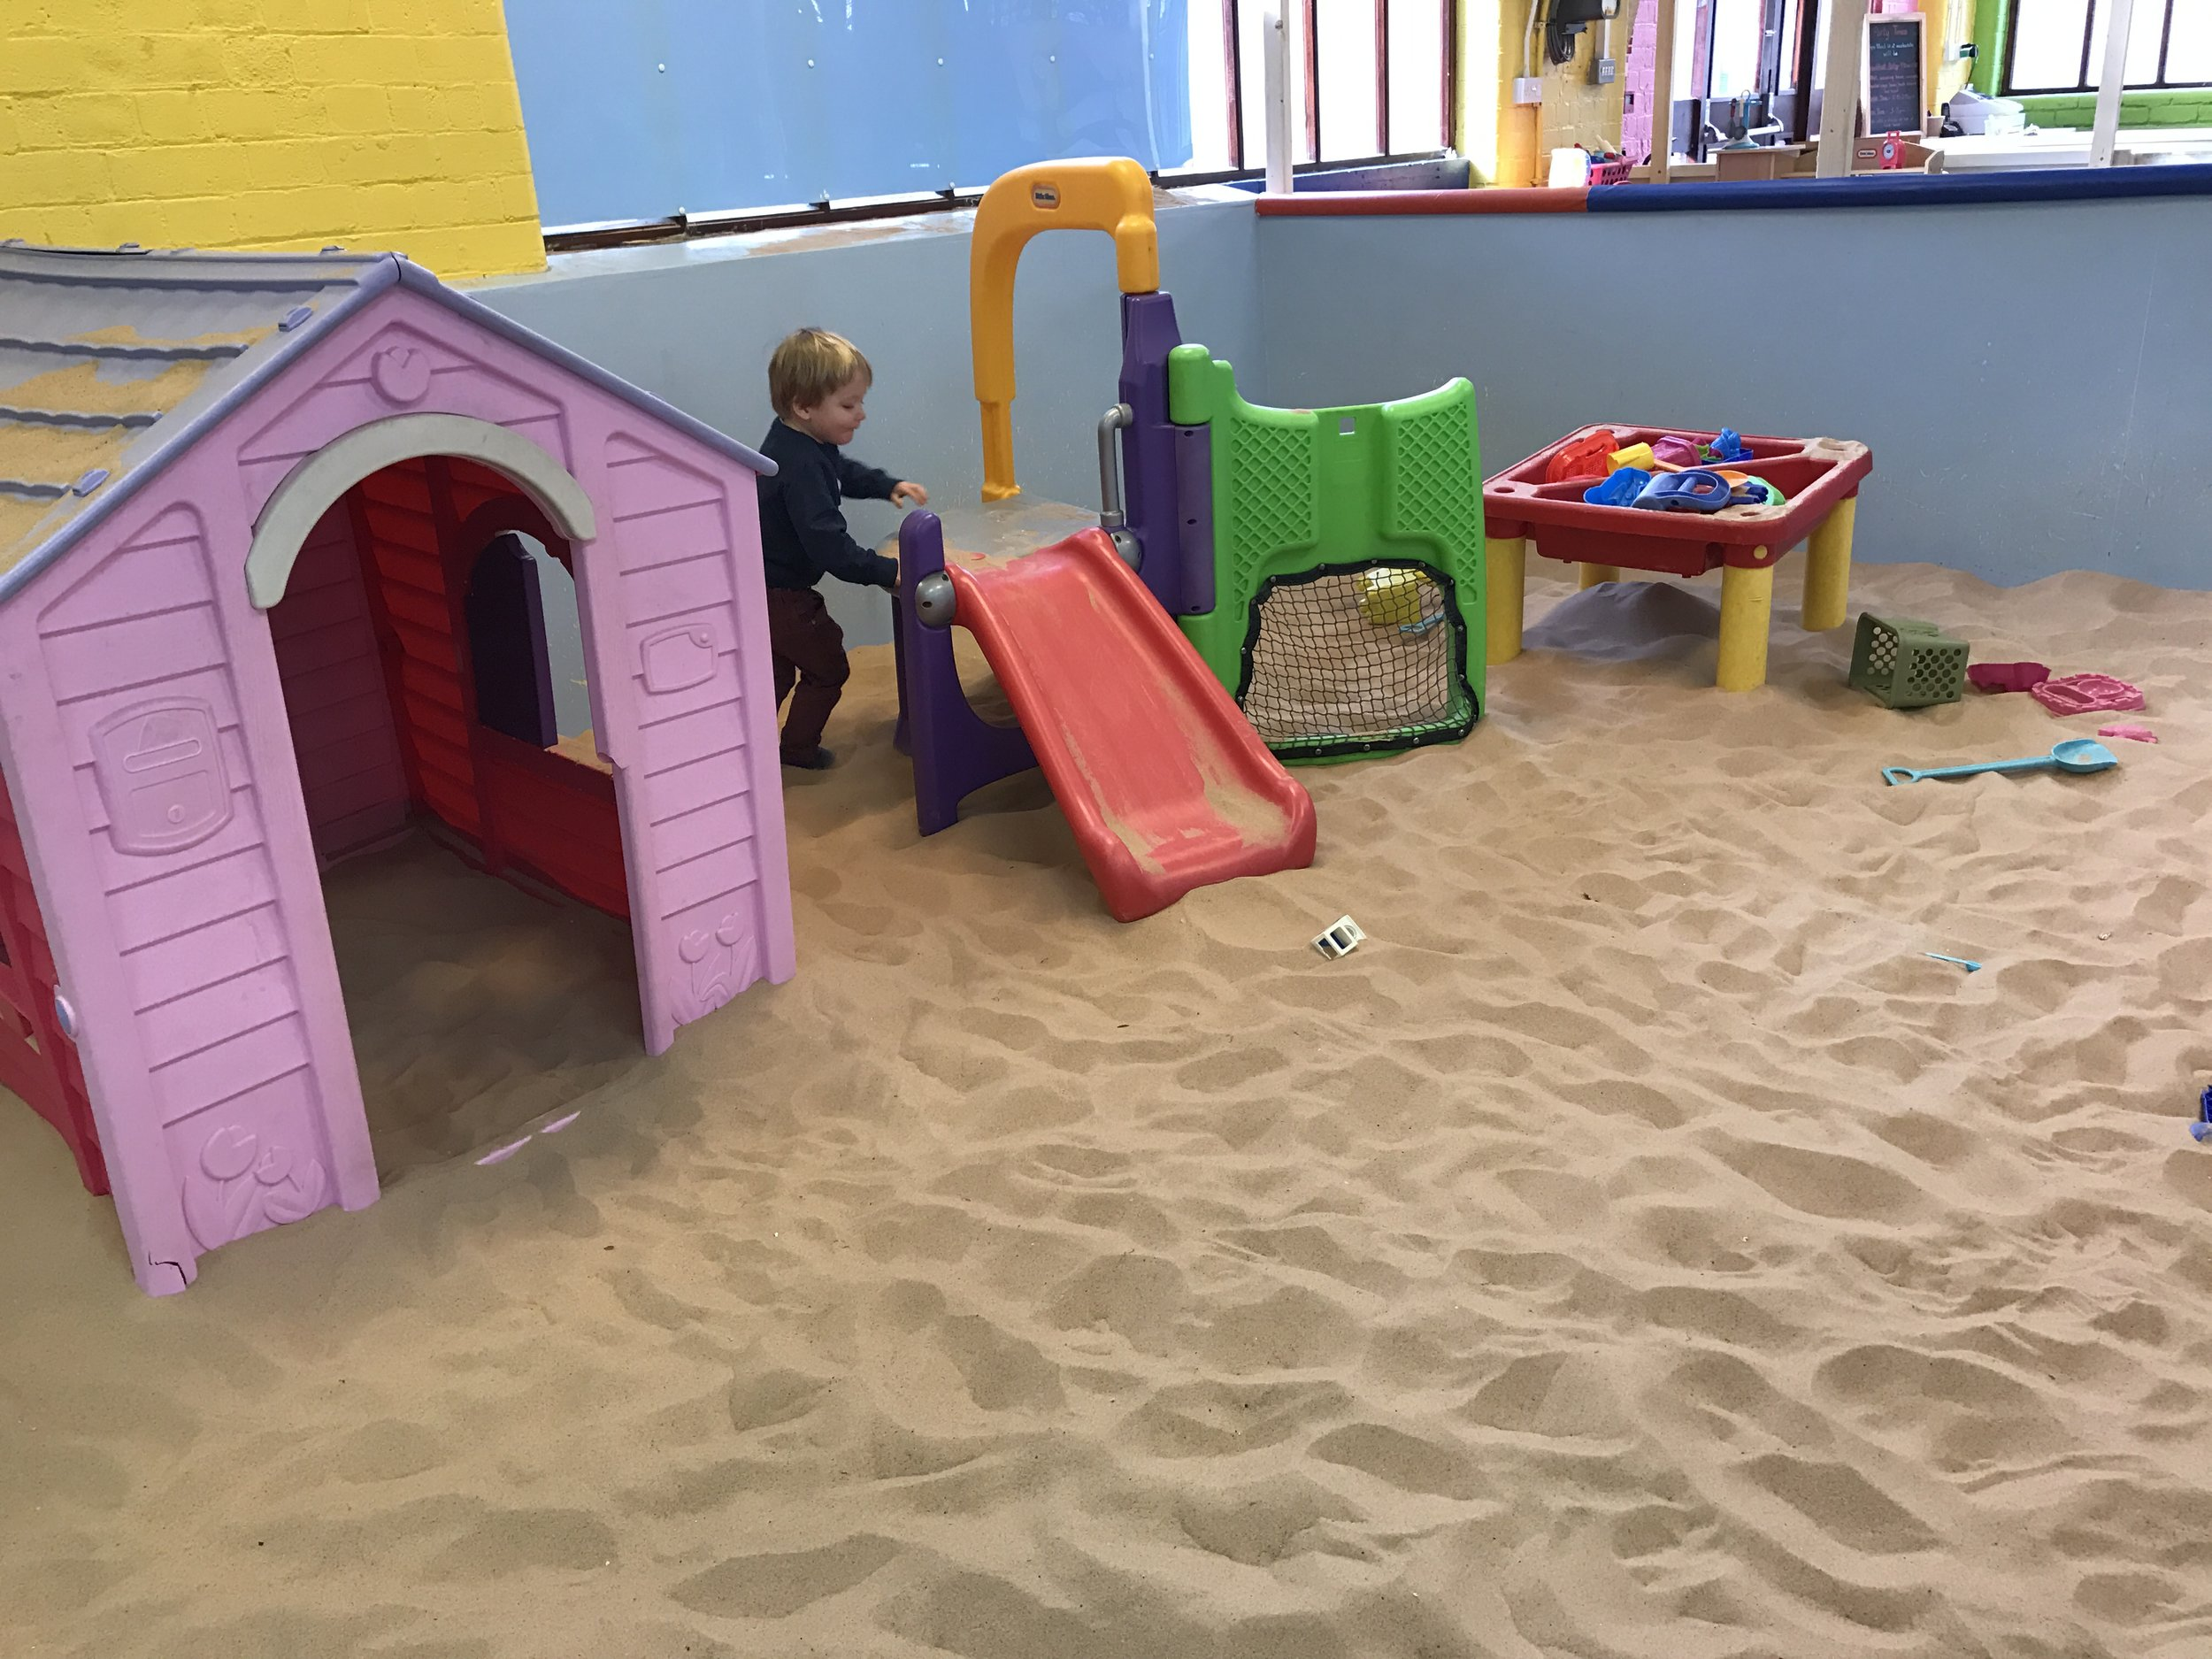 playmill-sand-pit-toys.JPG